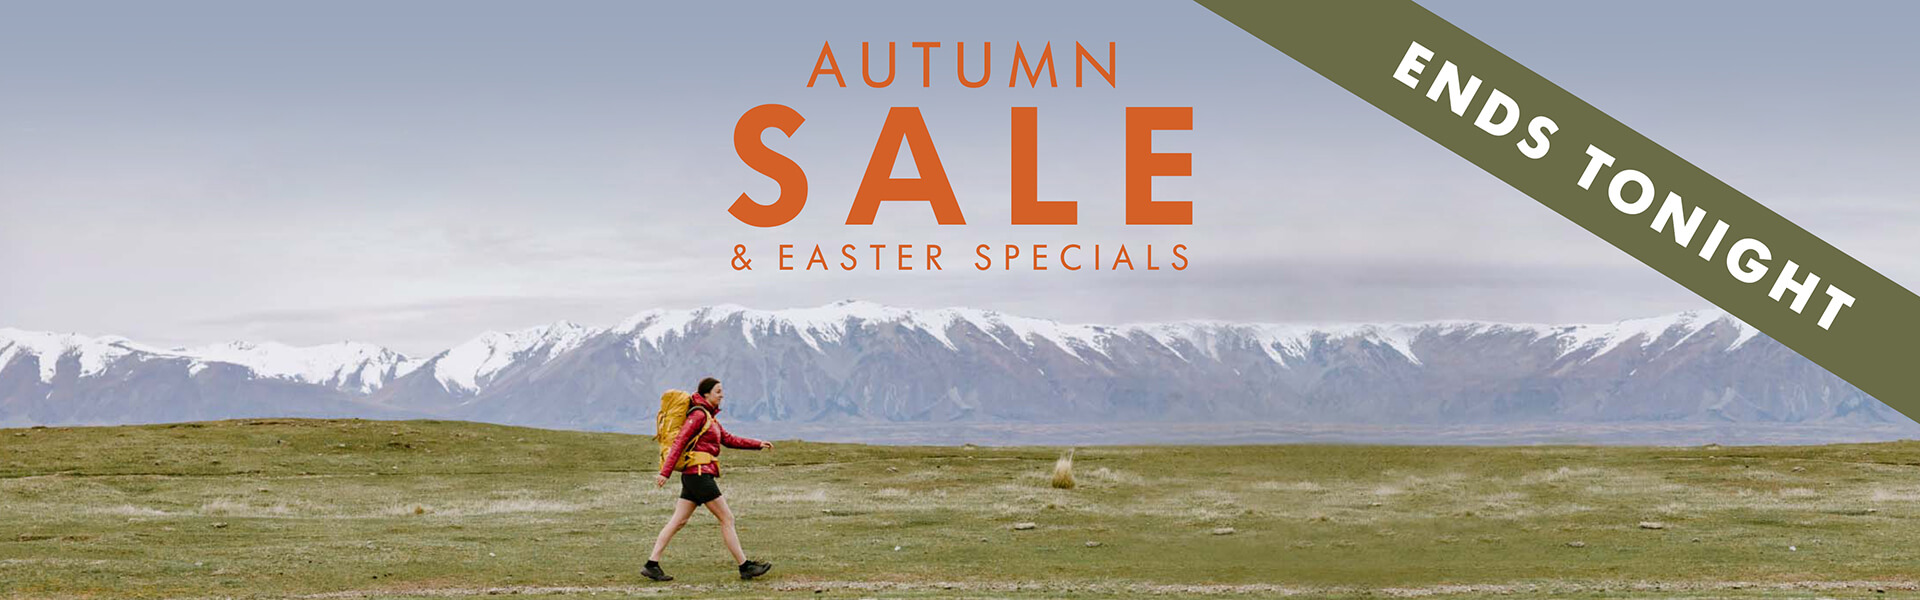 Winter Sale Final Weekend - Weather Anything